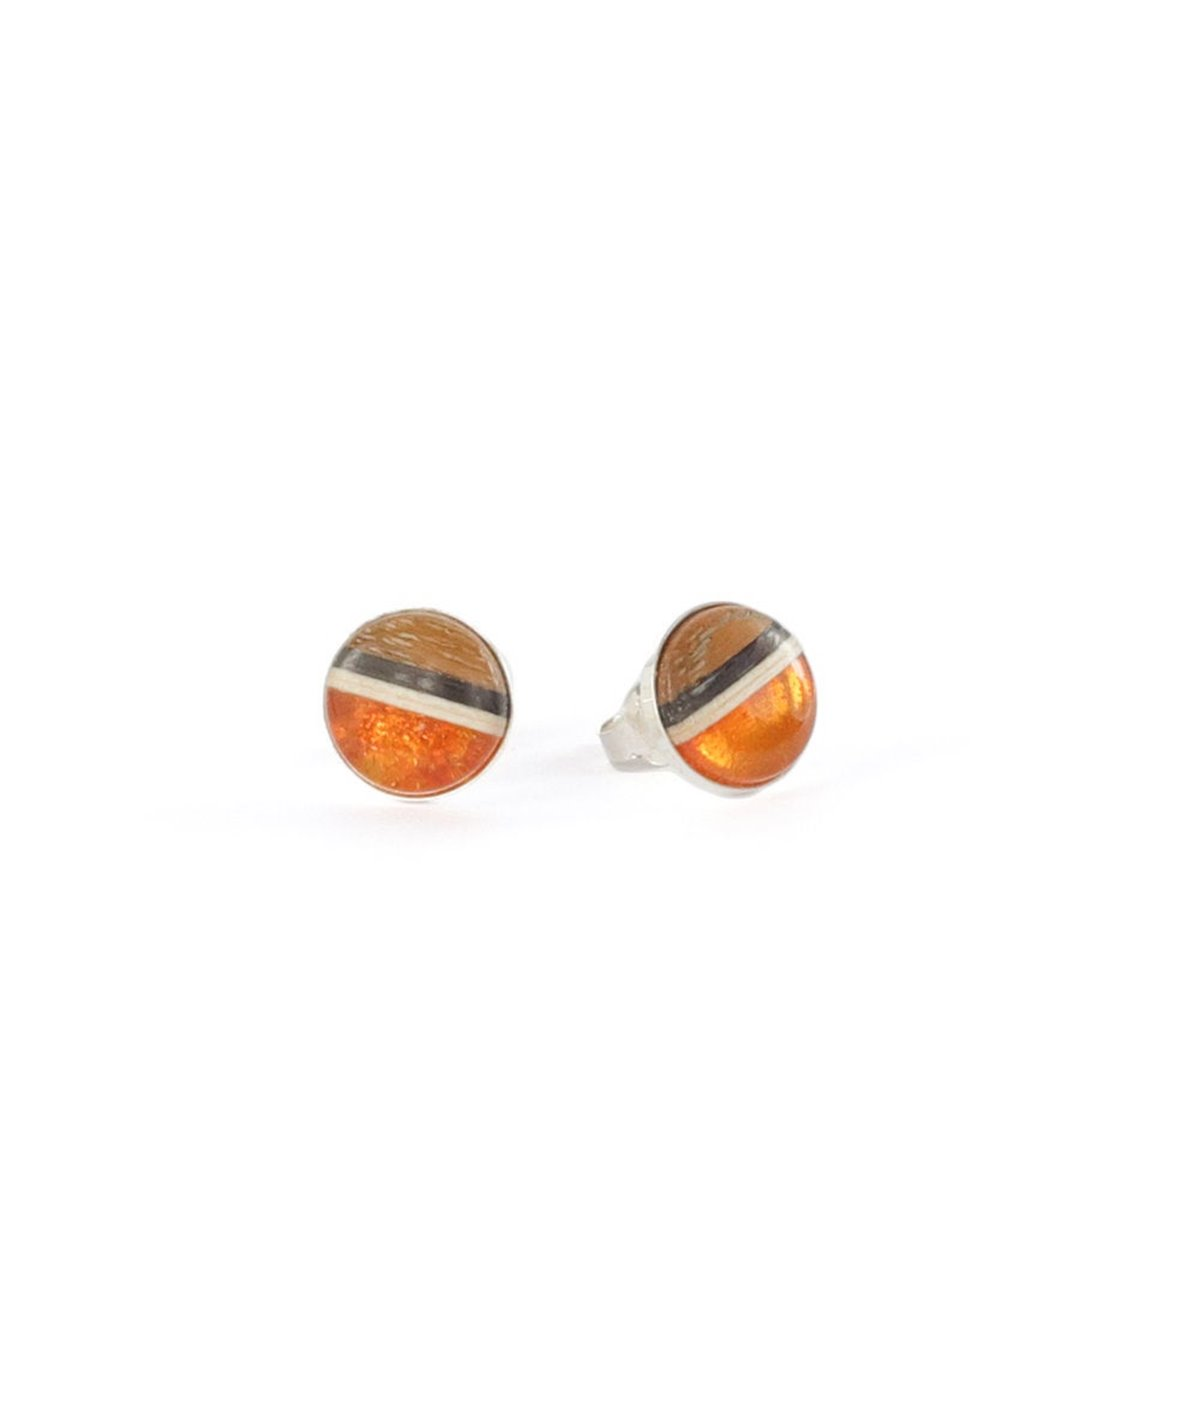 ROUND XS studs pins, baltic amber, + wood + Sterling silver, orange brown, by Amberwood Marta Wlodarska